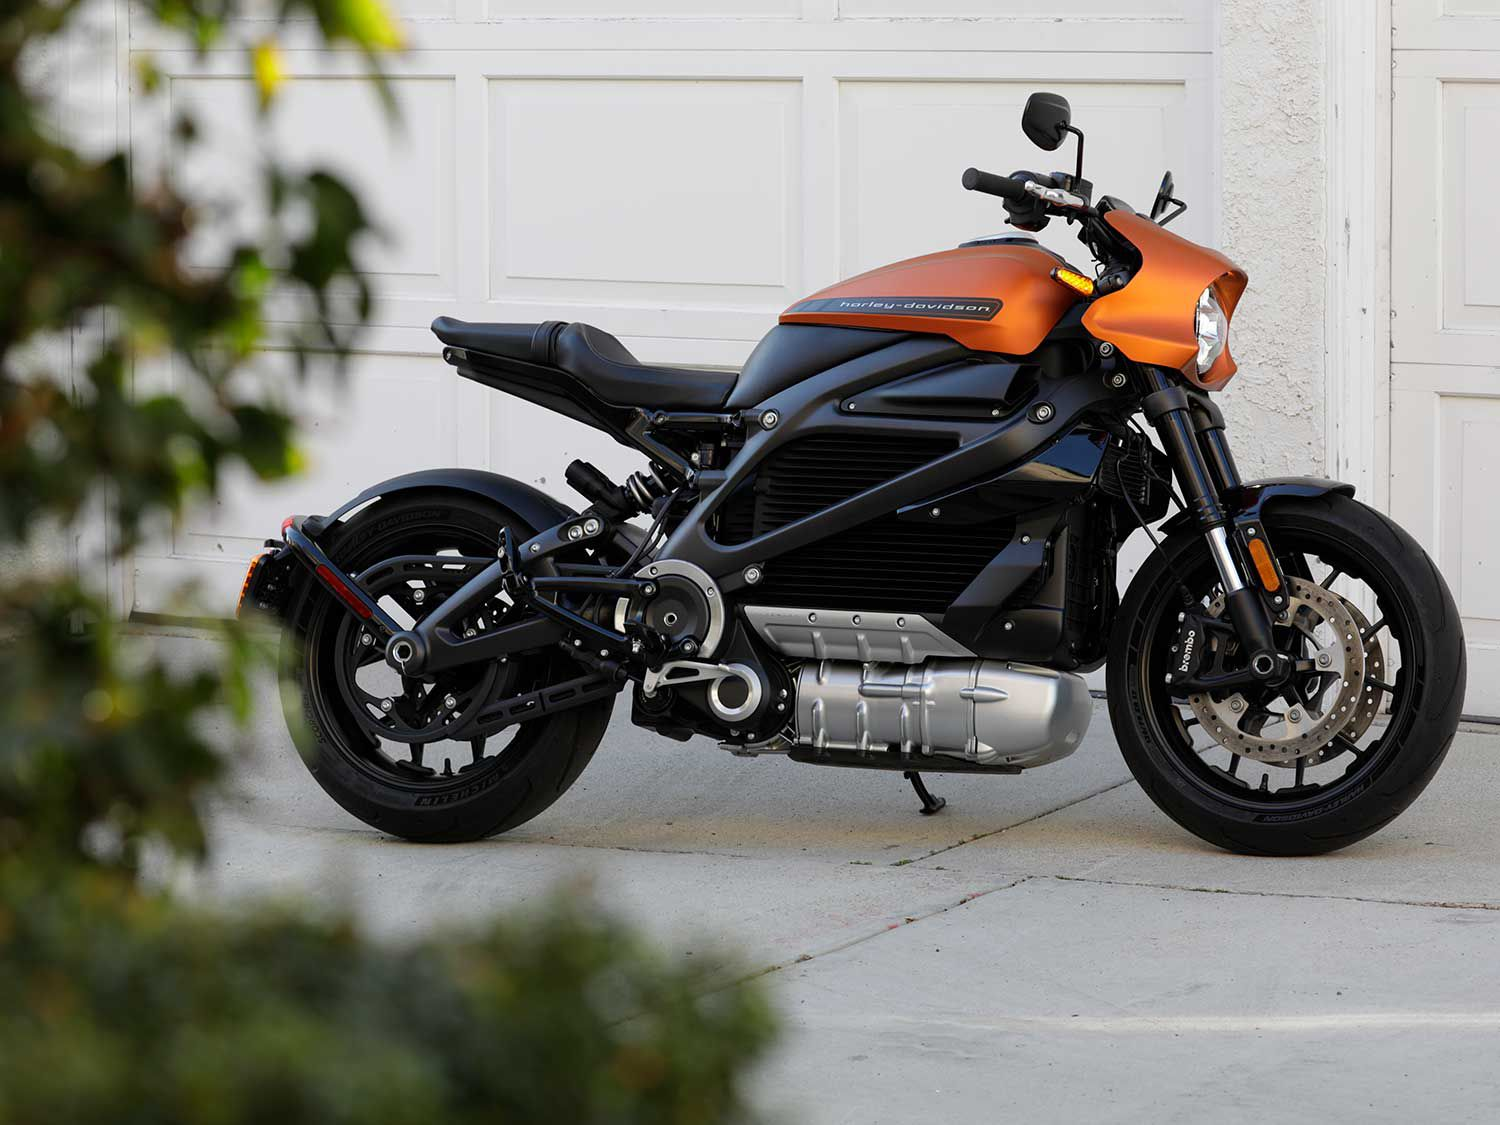 Saddle up as we go for a ride aboard Harley-Davidson's all-electric LiveWire motorcycle.